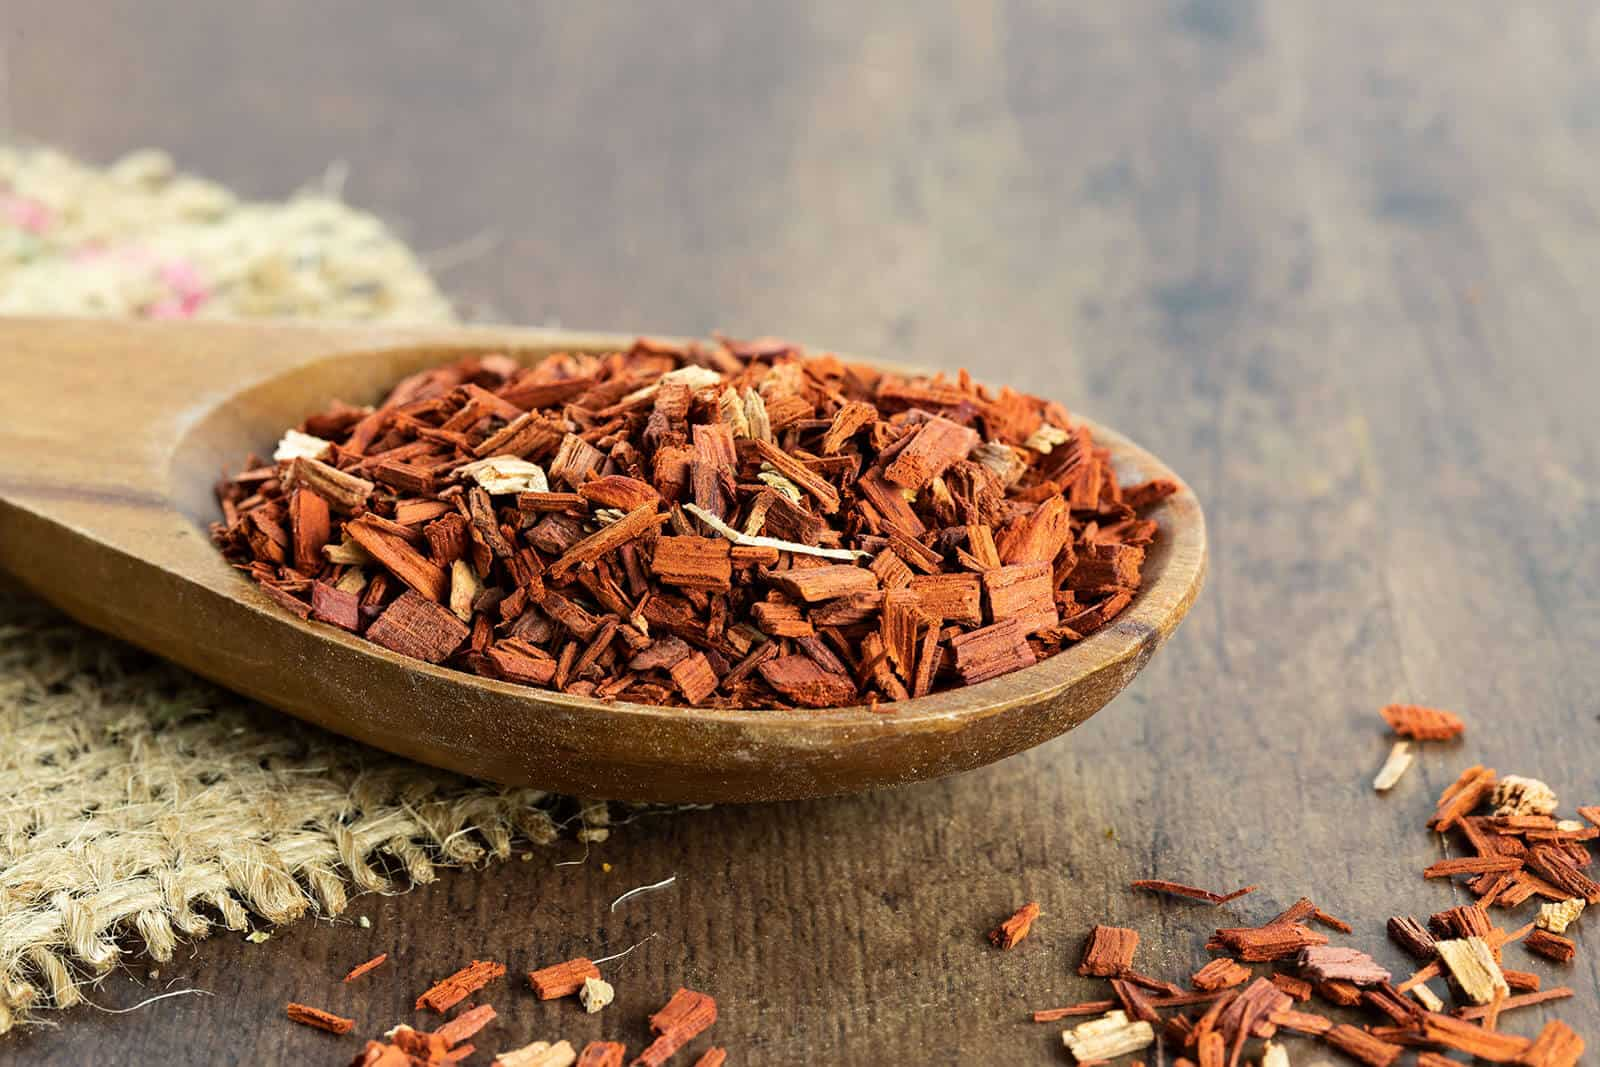 The Top 6 Proven Benefits and Uses of Sandalwood Essential